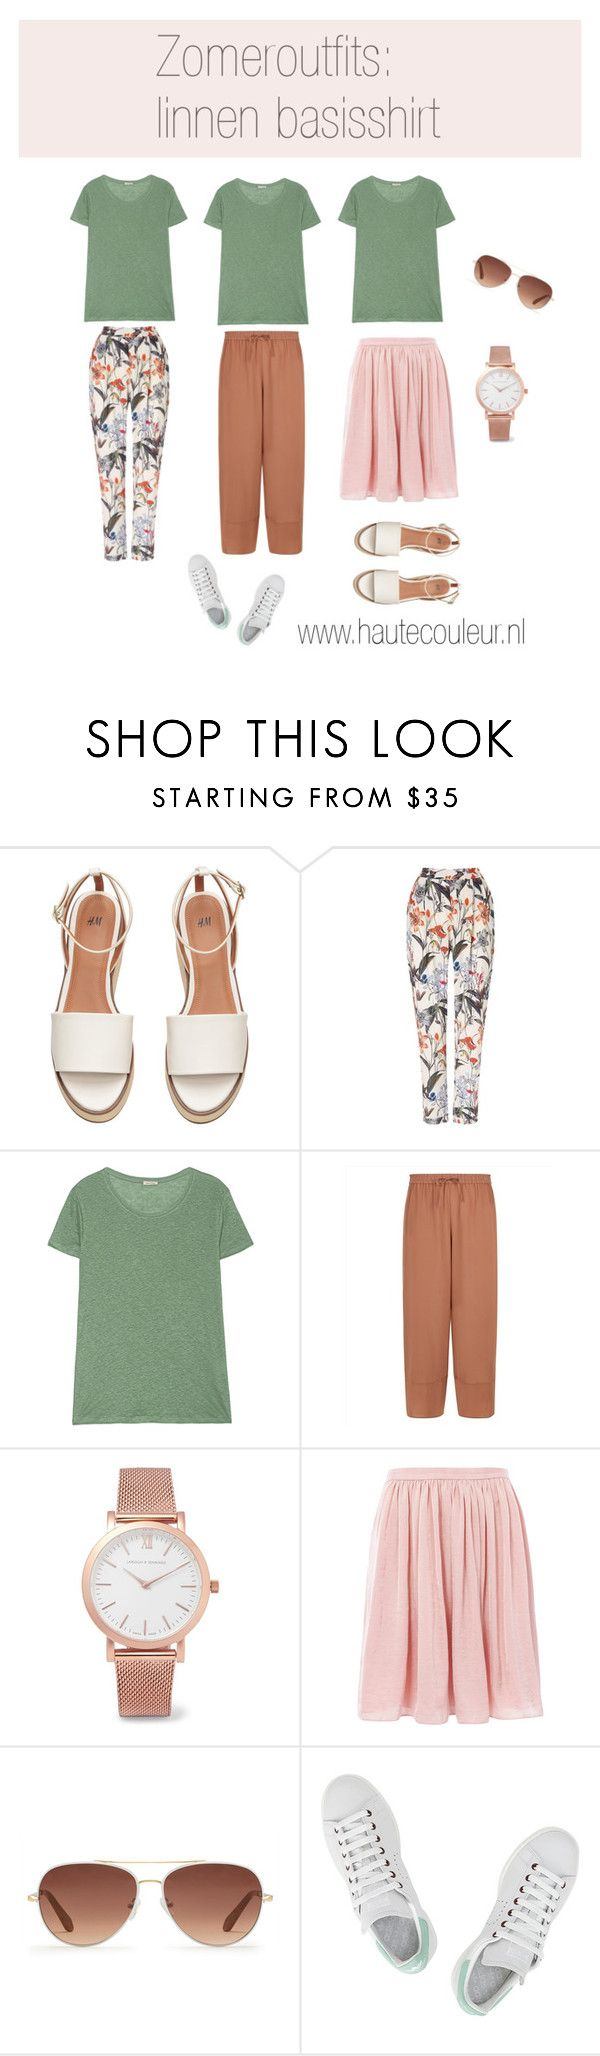 """Zomeroutfits: linnen basisshirt"" by veerlebiront on Polyvore featuring mode, Phase Eight, American Vintage, Jaeger, Larsson & Jennings, Needle & Thread, Stella & Dot en adidas"